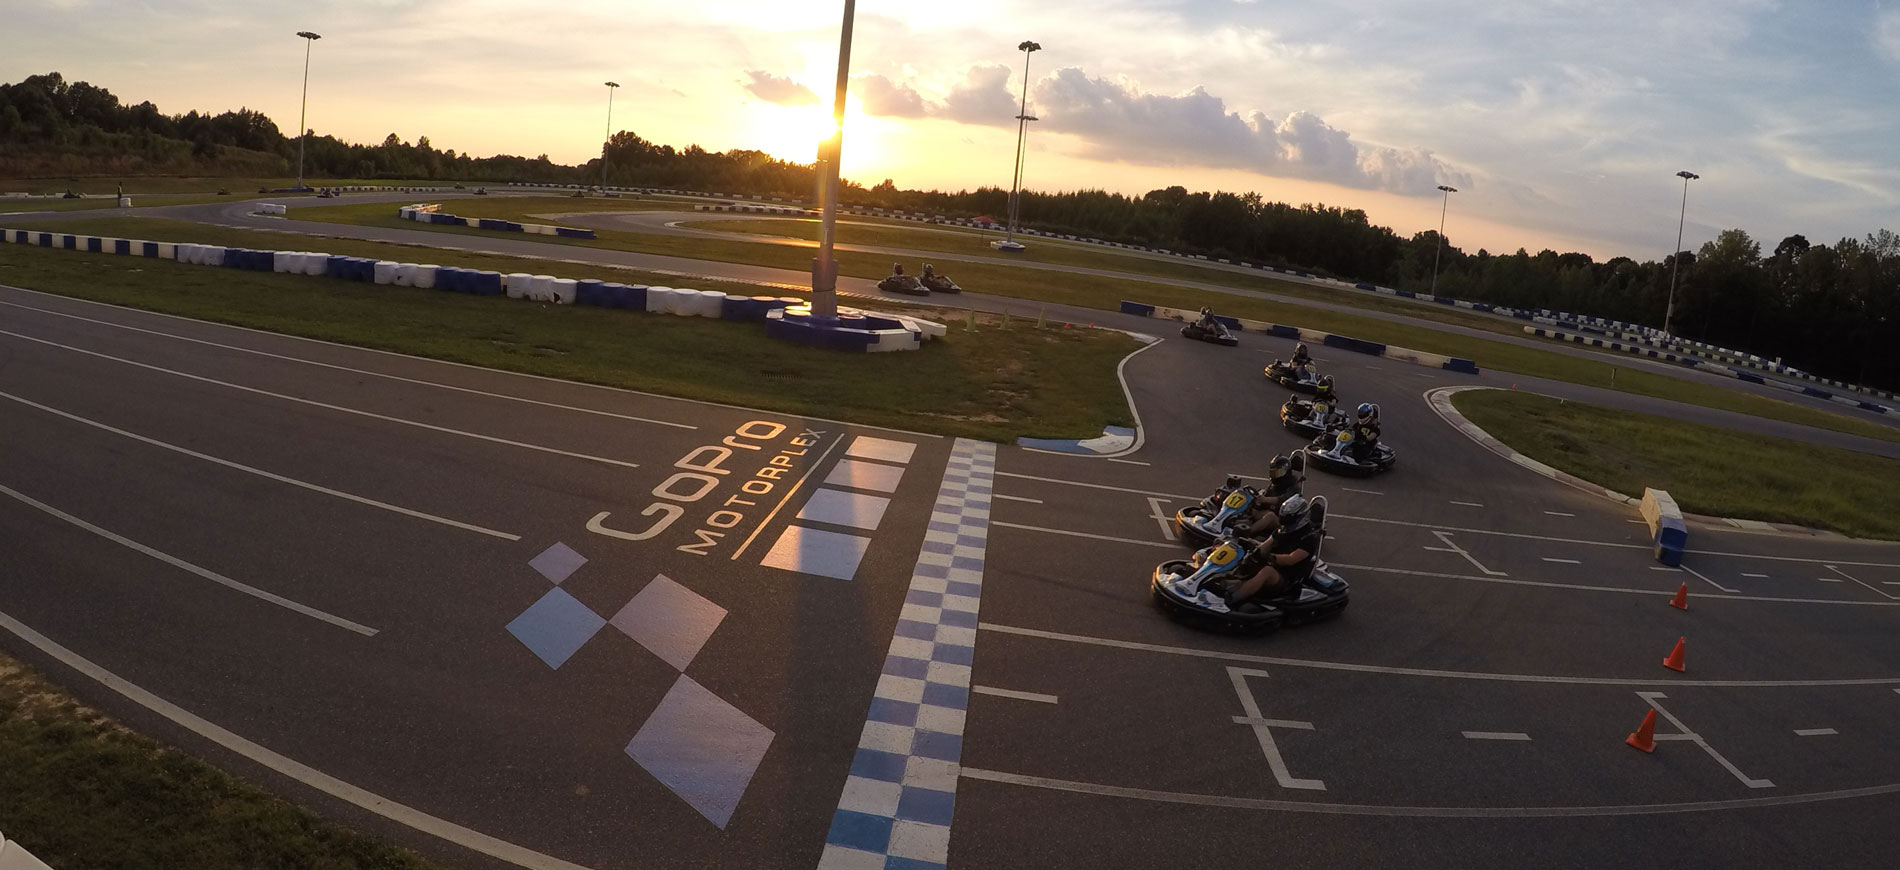 Track Change Thursdays, every Thursday in Aug., 7-9pm